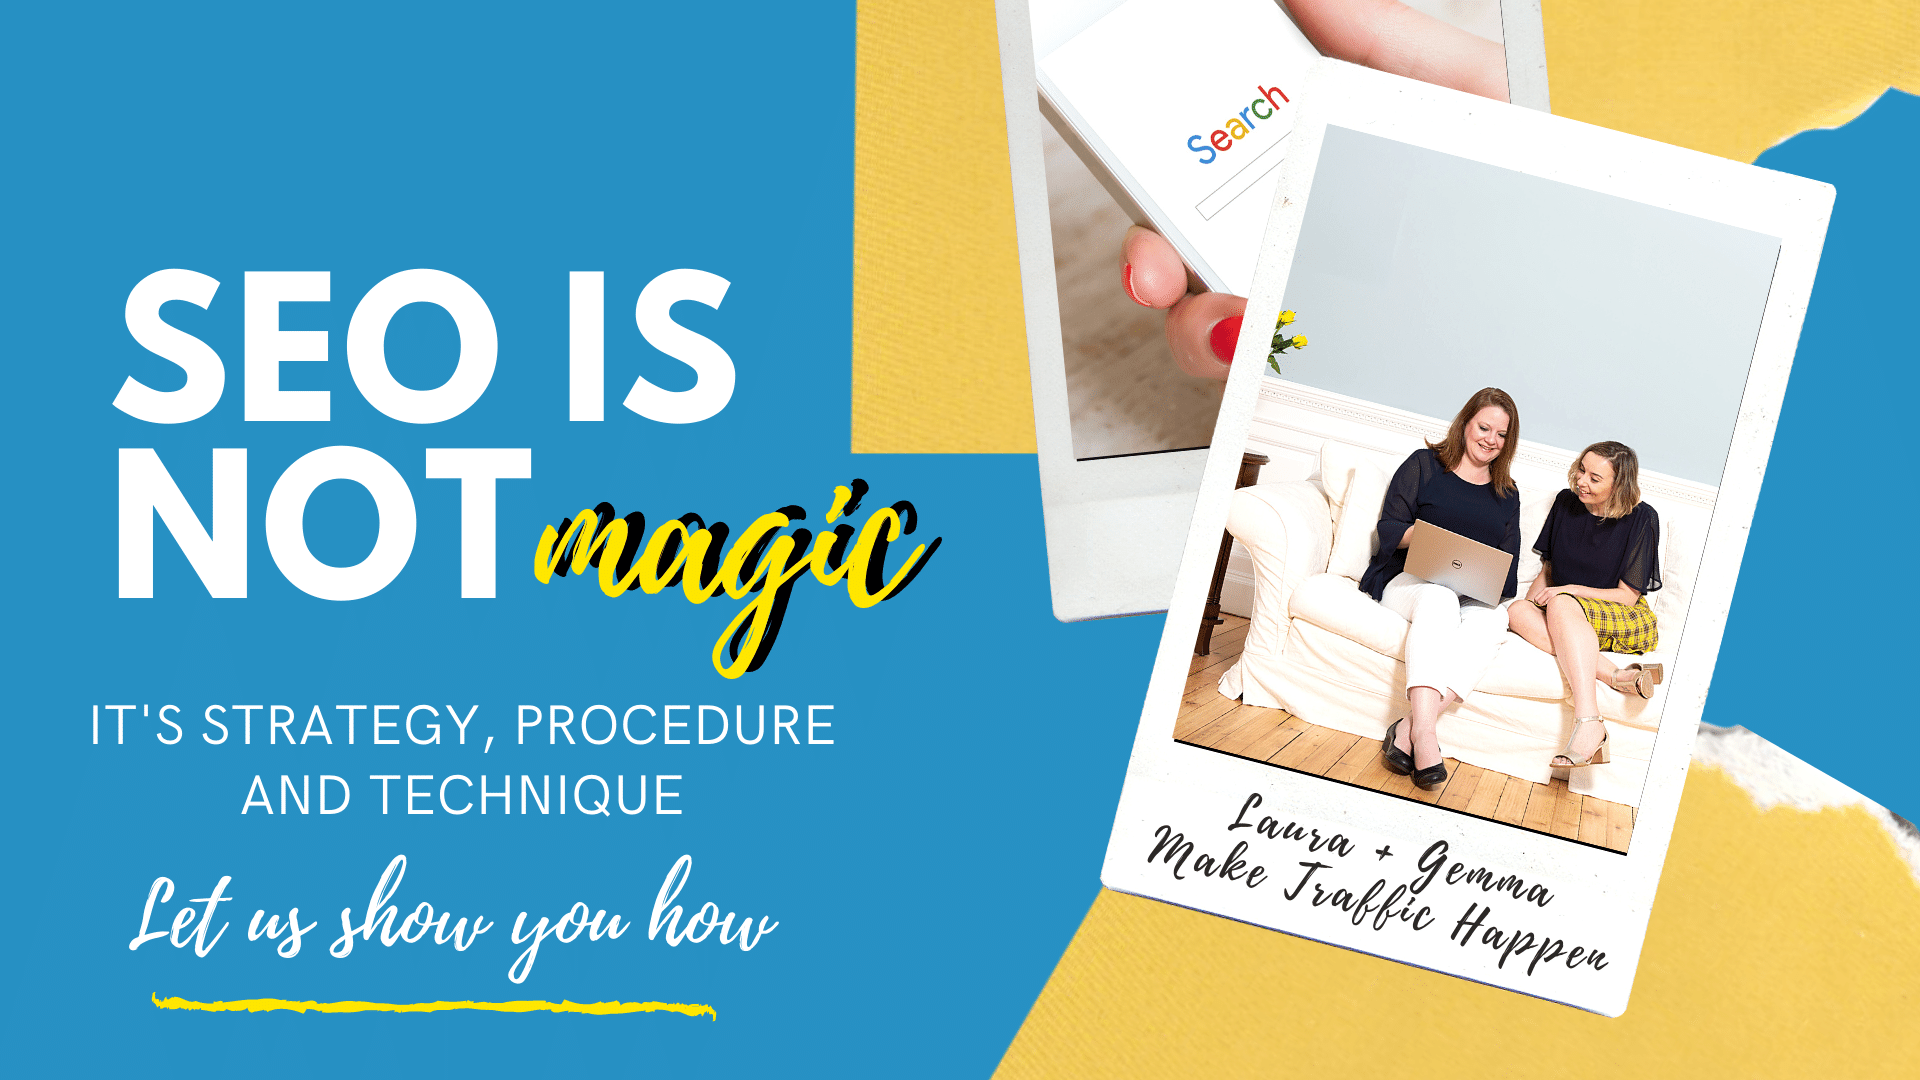 Infographic text: SEO is not magic, let us show you how. Image: Laura with brown hair and Gemma with brown hair looking at laptop on white sofa. Yellow flowers on table.